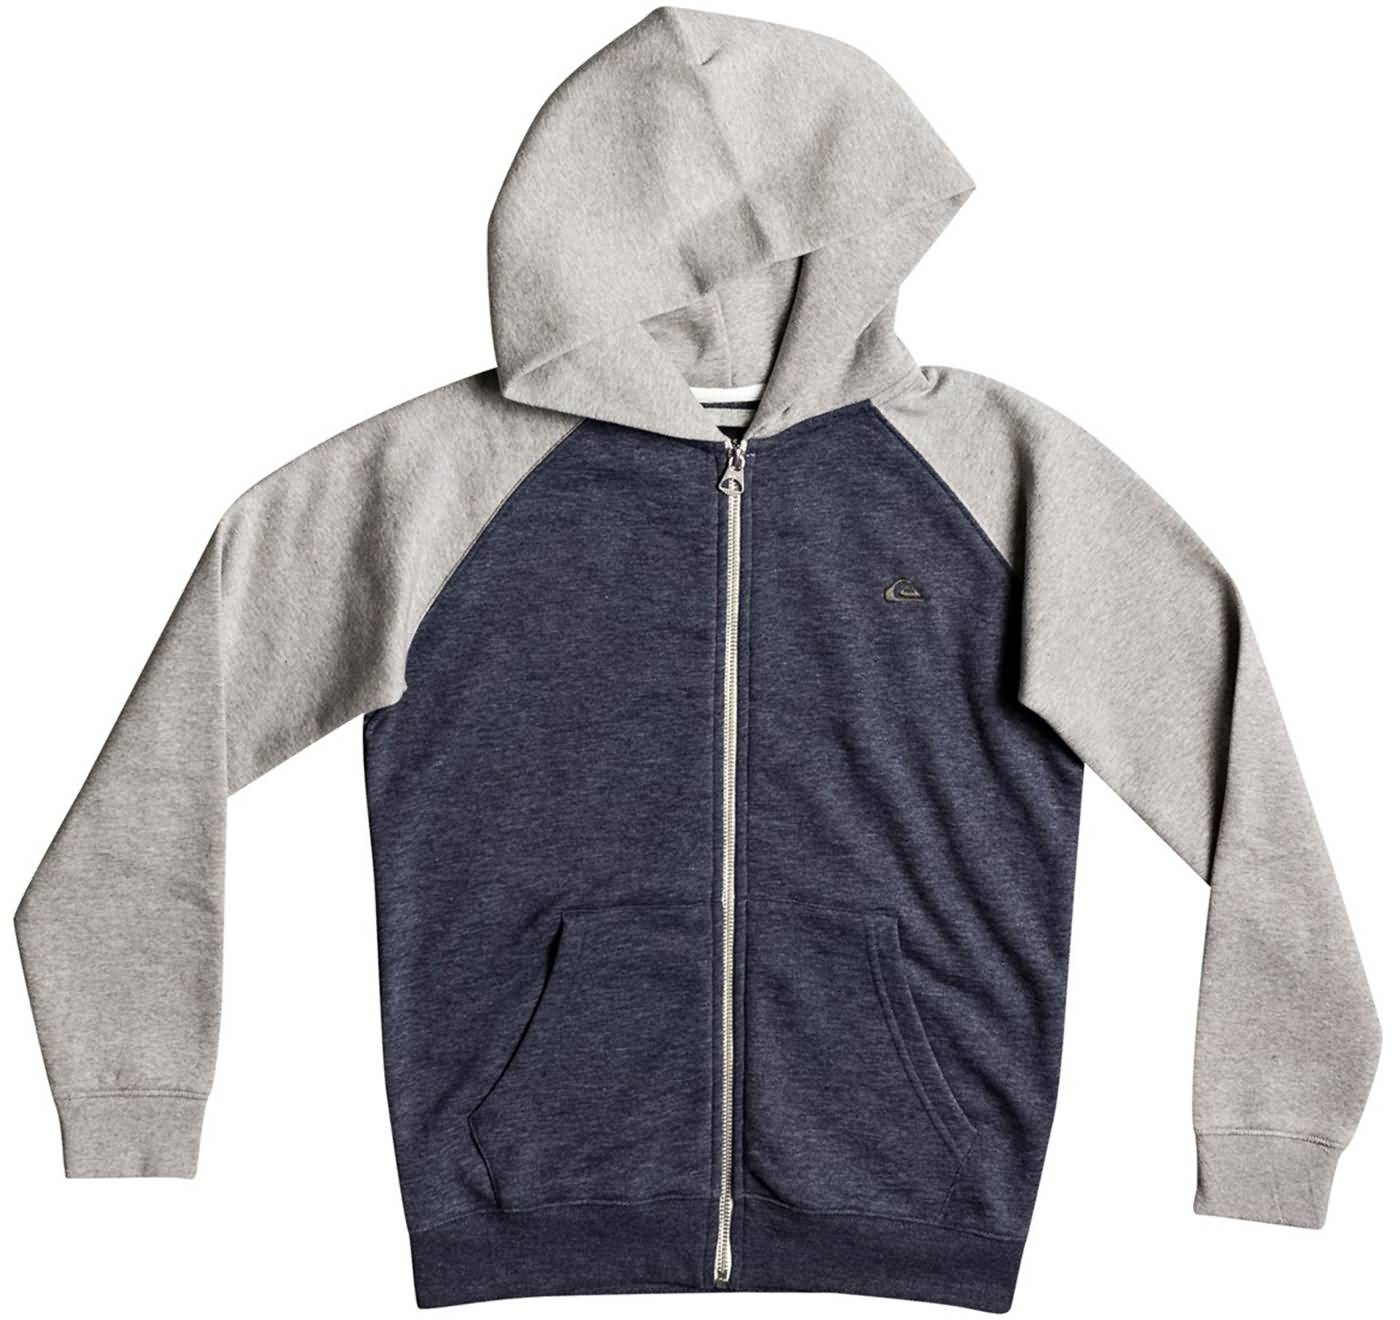 Quiksilver Surf Fall 2017 Youth Boys Lifestyle Jackets & Hoodies Preview